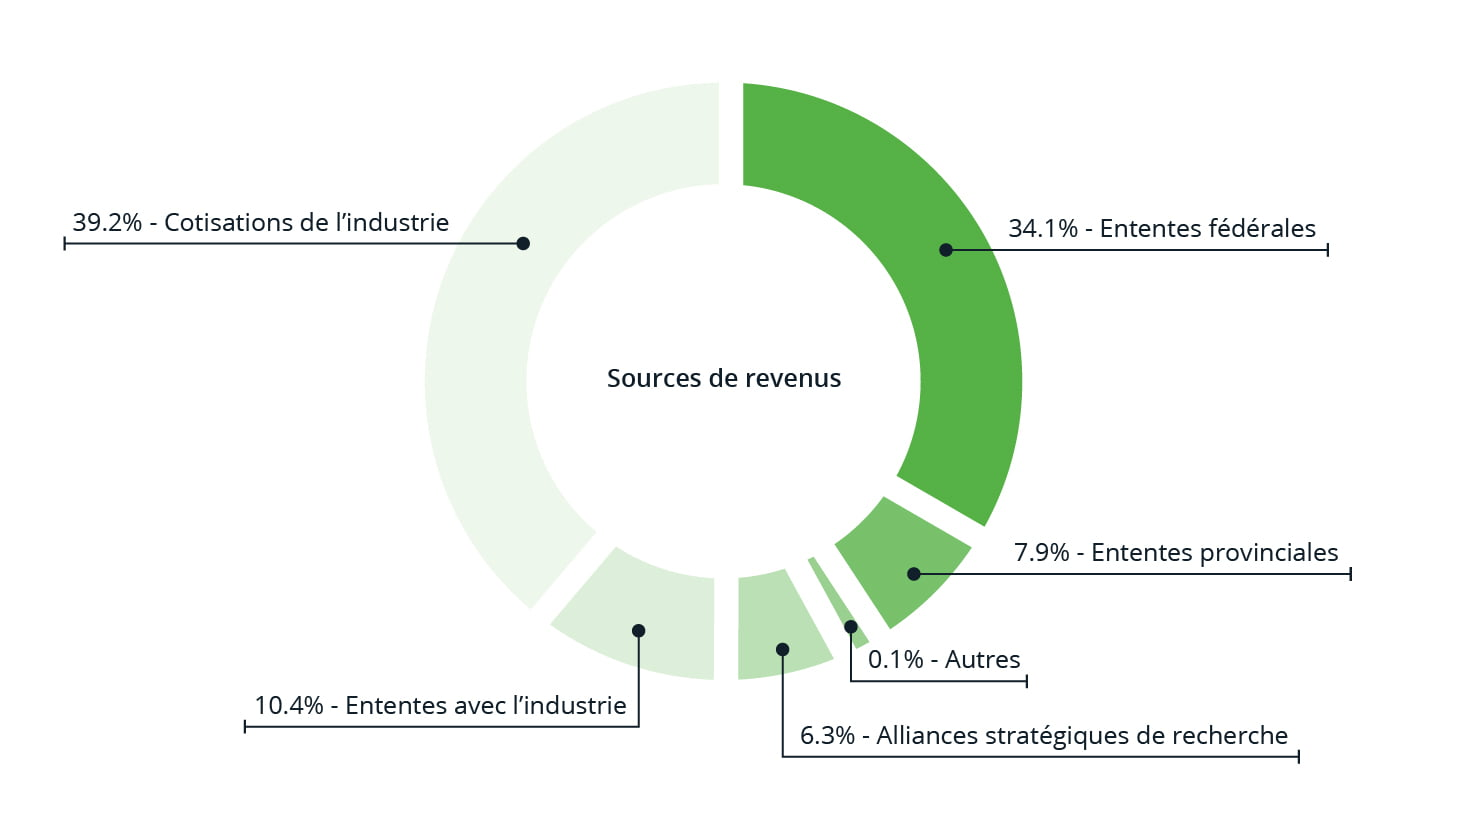 Financial Results - PPB - Annual Report - 700x400 - FR